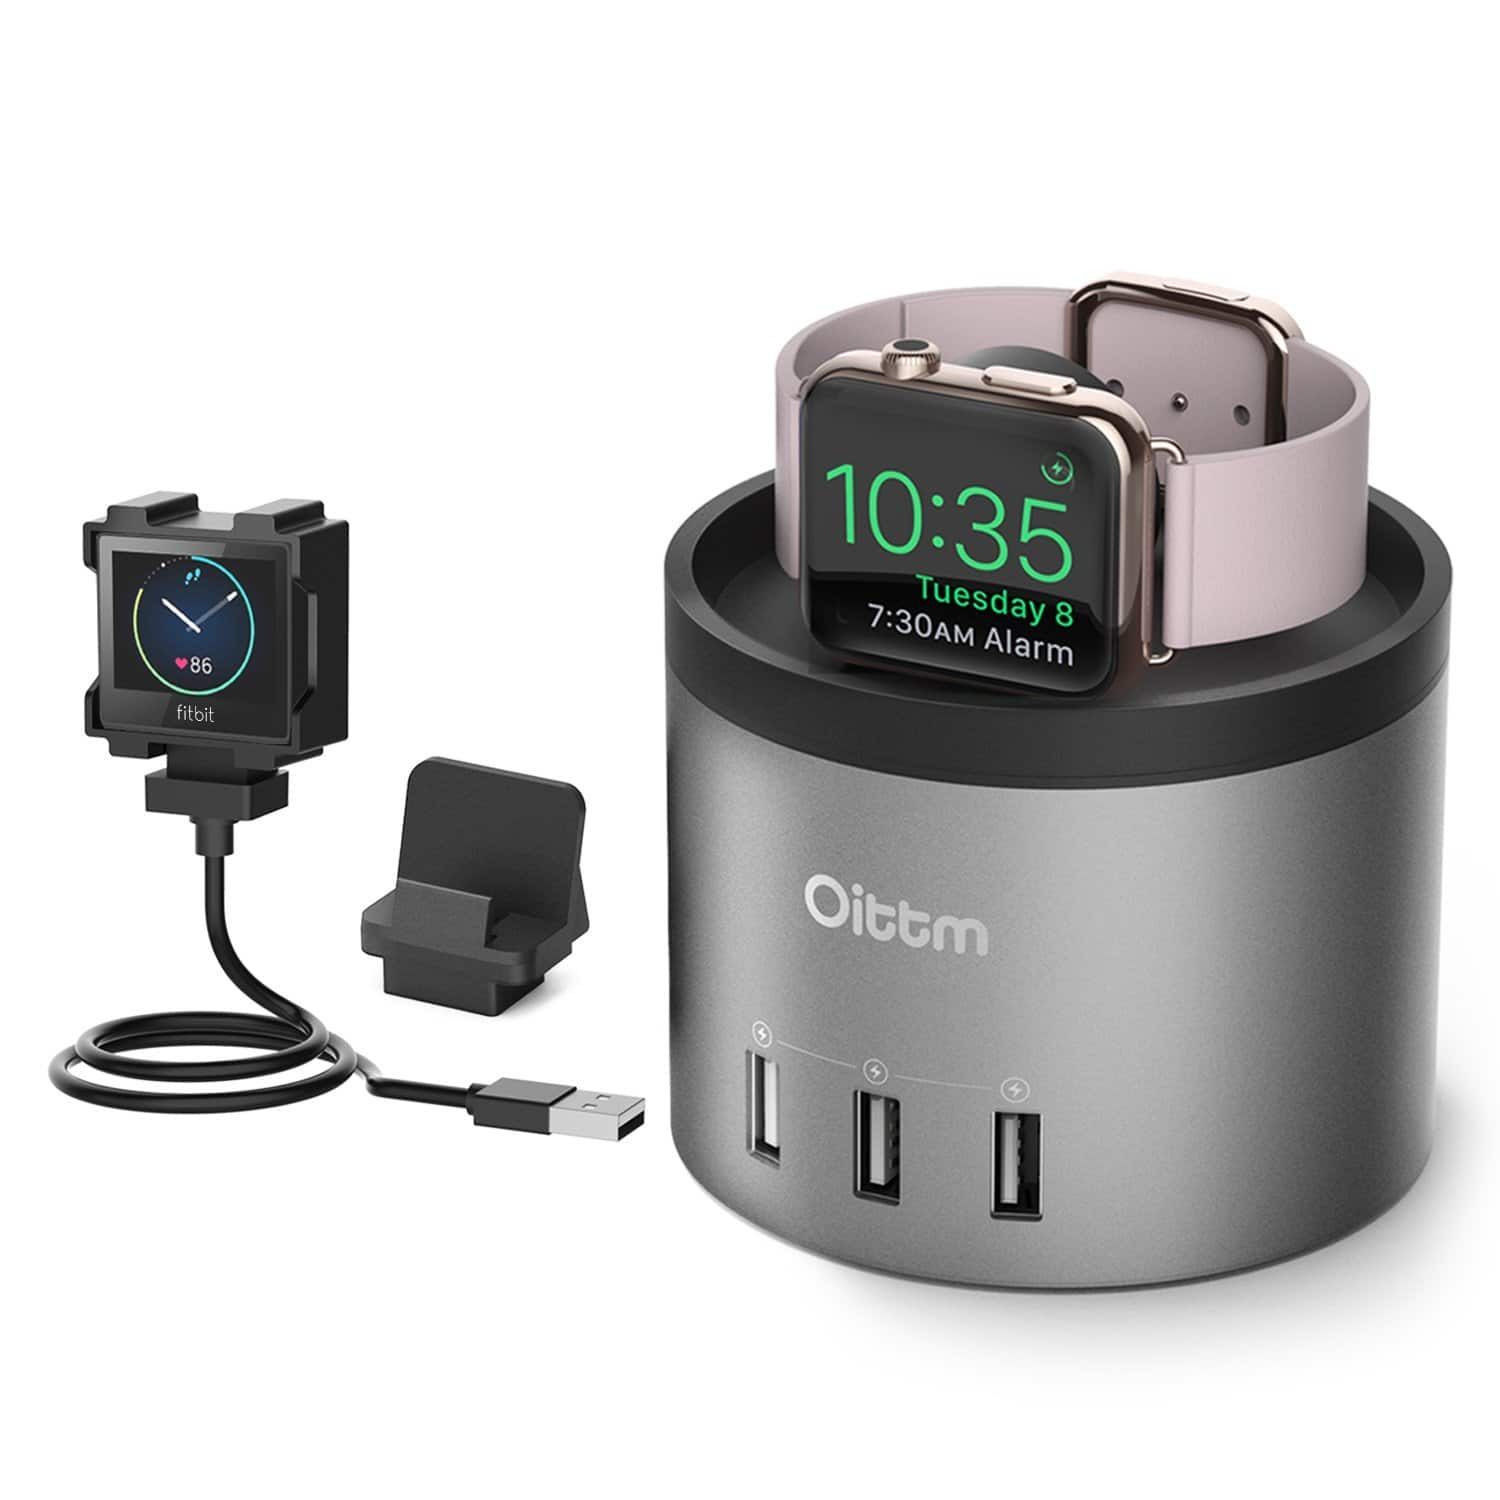 Oittm 3 in 1 Charging Dock for Apple Watch Series 1/2/3, iPhone8/7S/7S Plus/7/7 Plus/6/Fitbit Blaze & Other USB Devices - $19.87 AC+FS